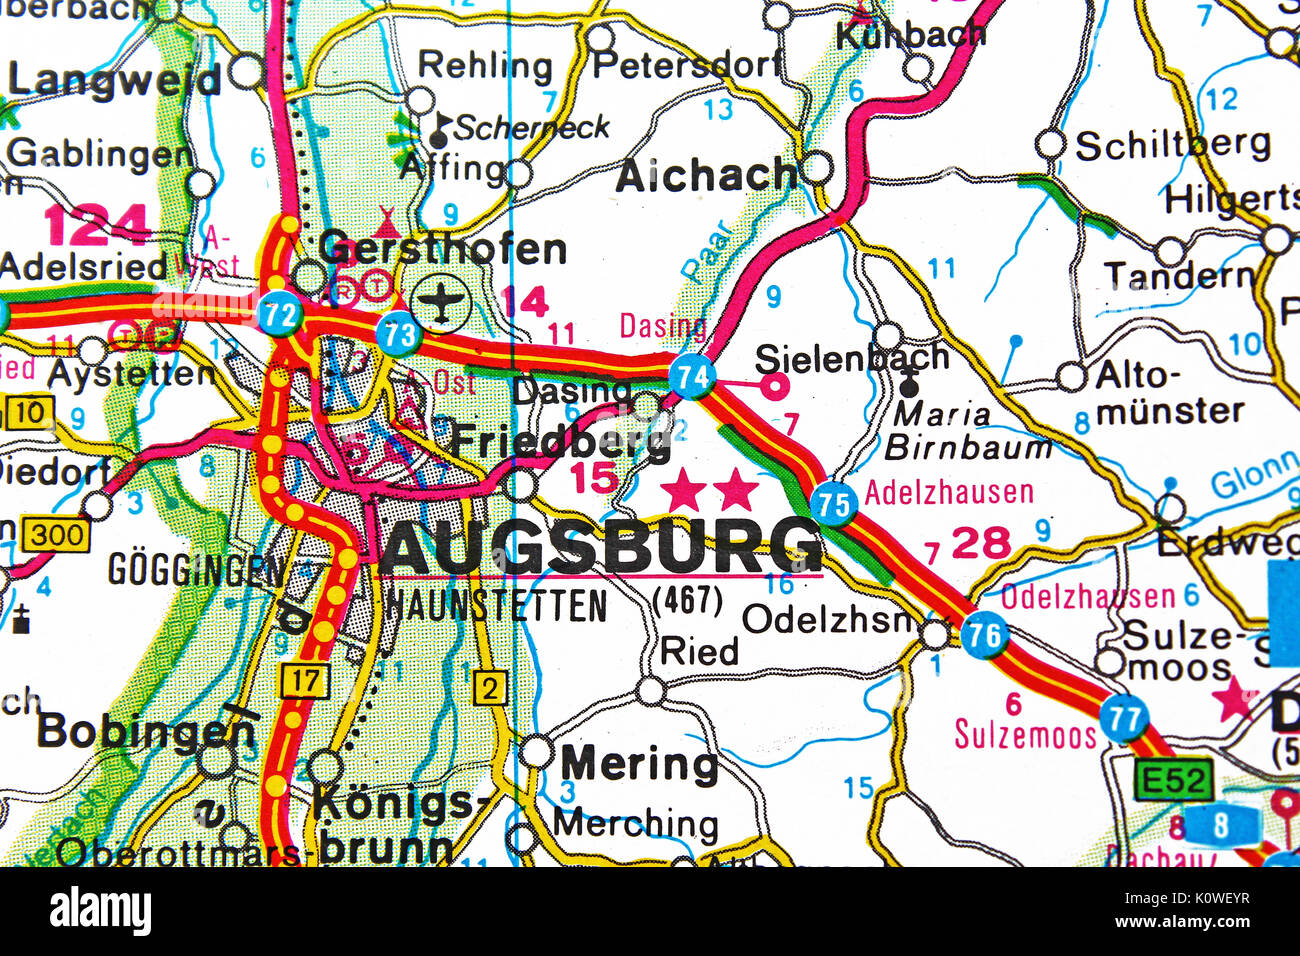 Augsburg map city map road map Stock Photo 155453867 Alamy